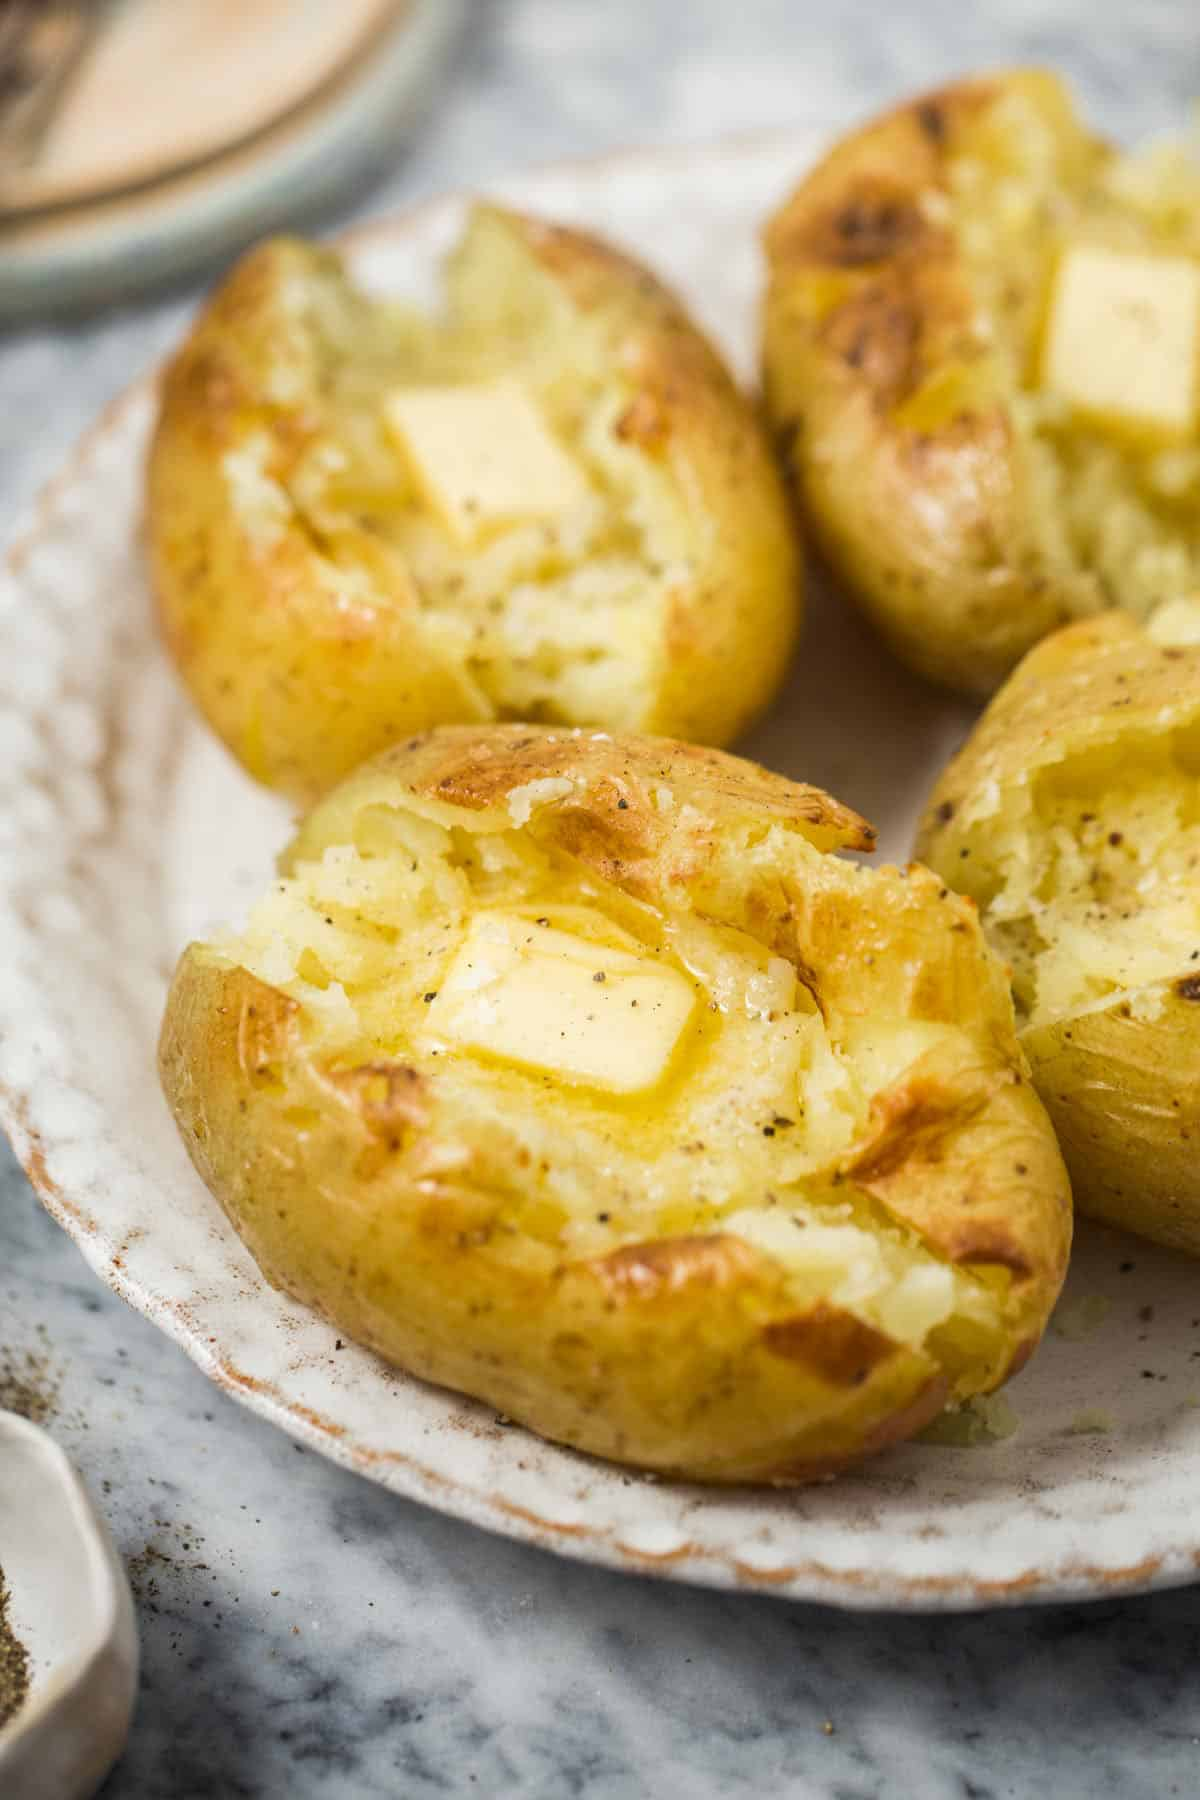 Instant Pot Baked Potatoes topped with butter